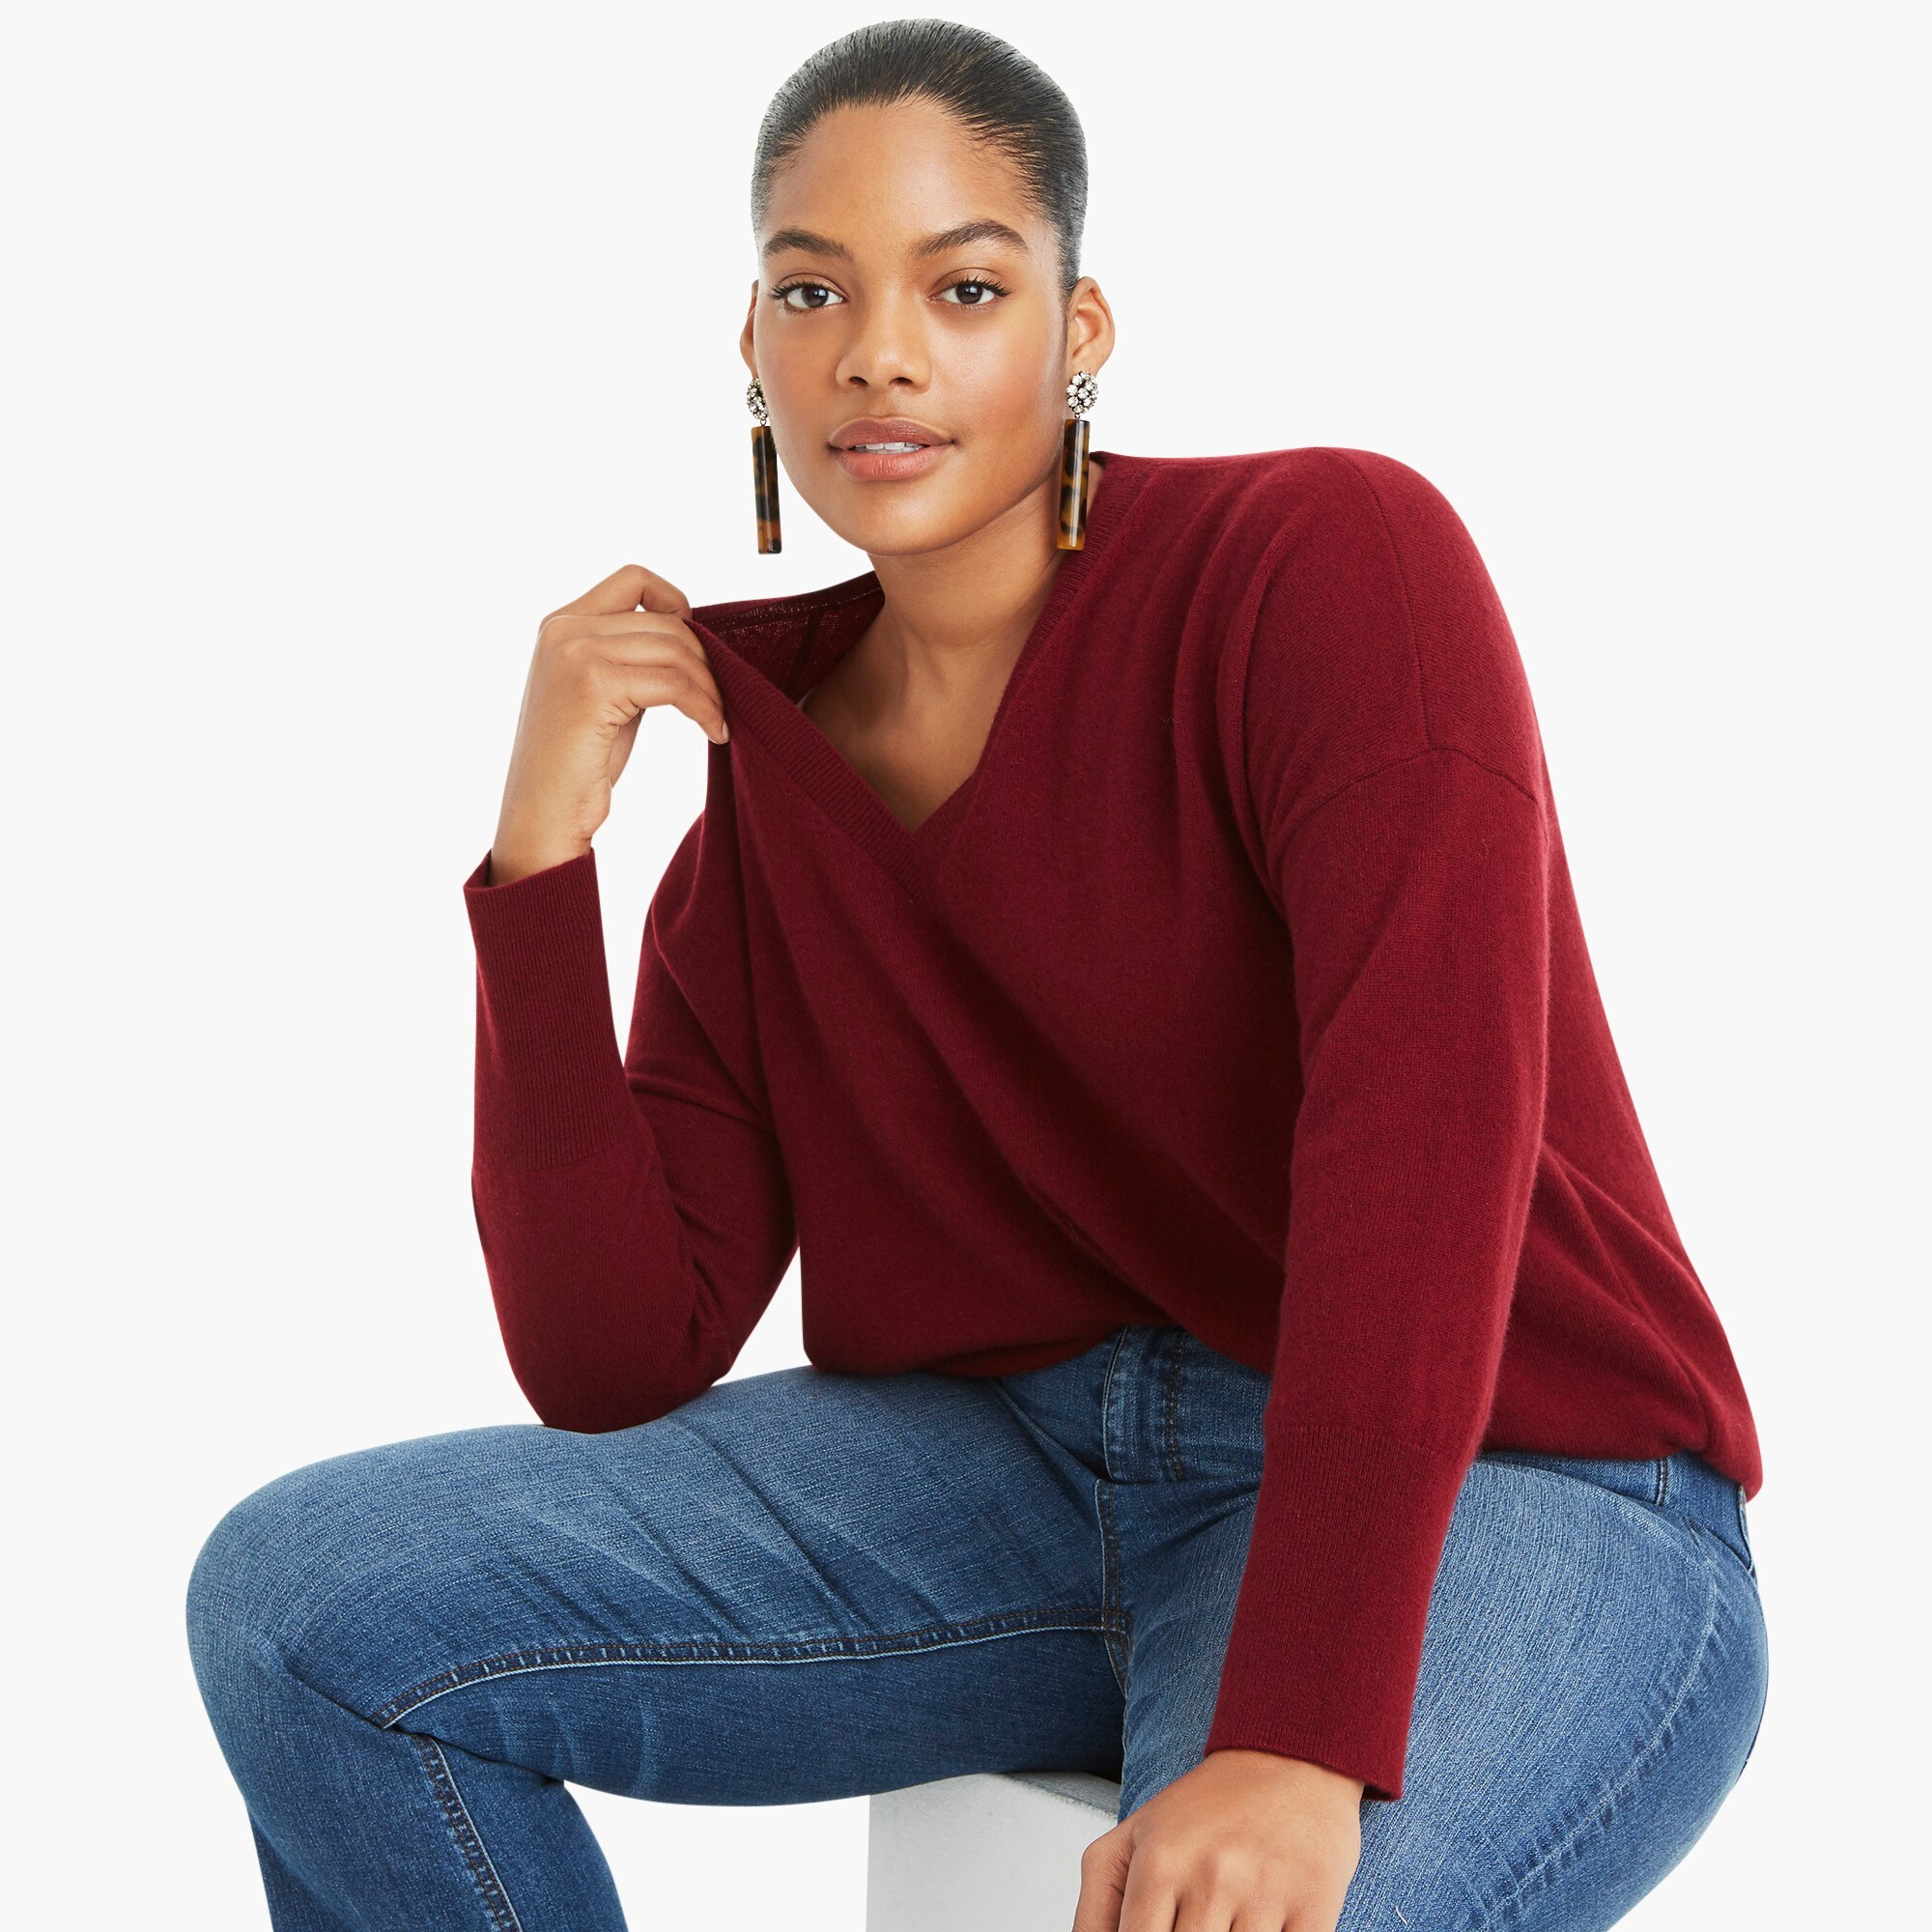 V-neck Boyfriend sweater in everyday cashmere